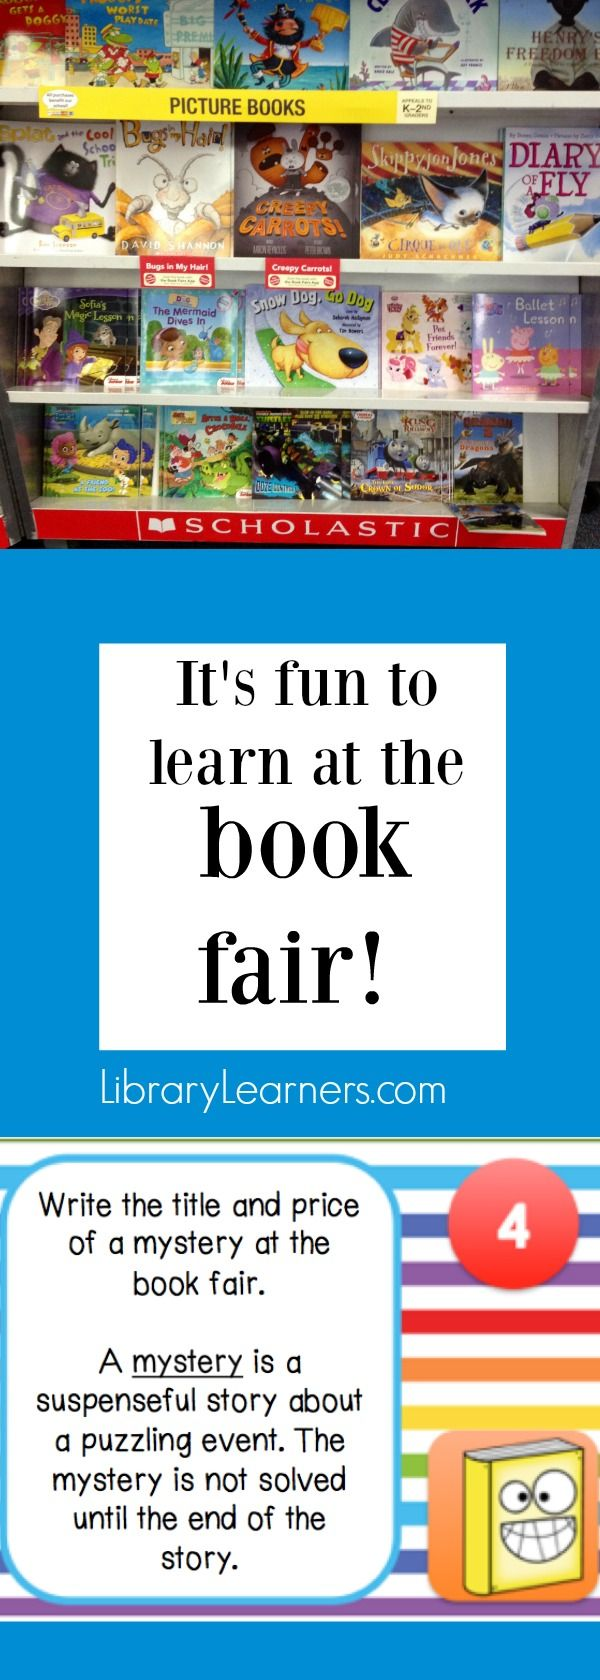 Book Fair Scavenger Hunt Task Cards help your students find genres and fun details on the front covers! Click to learn more!